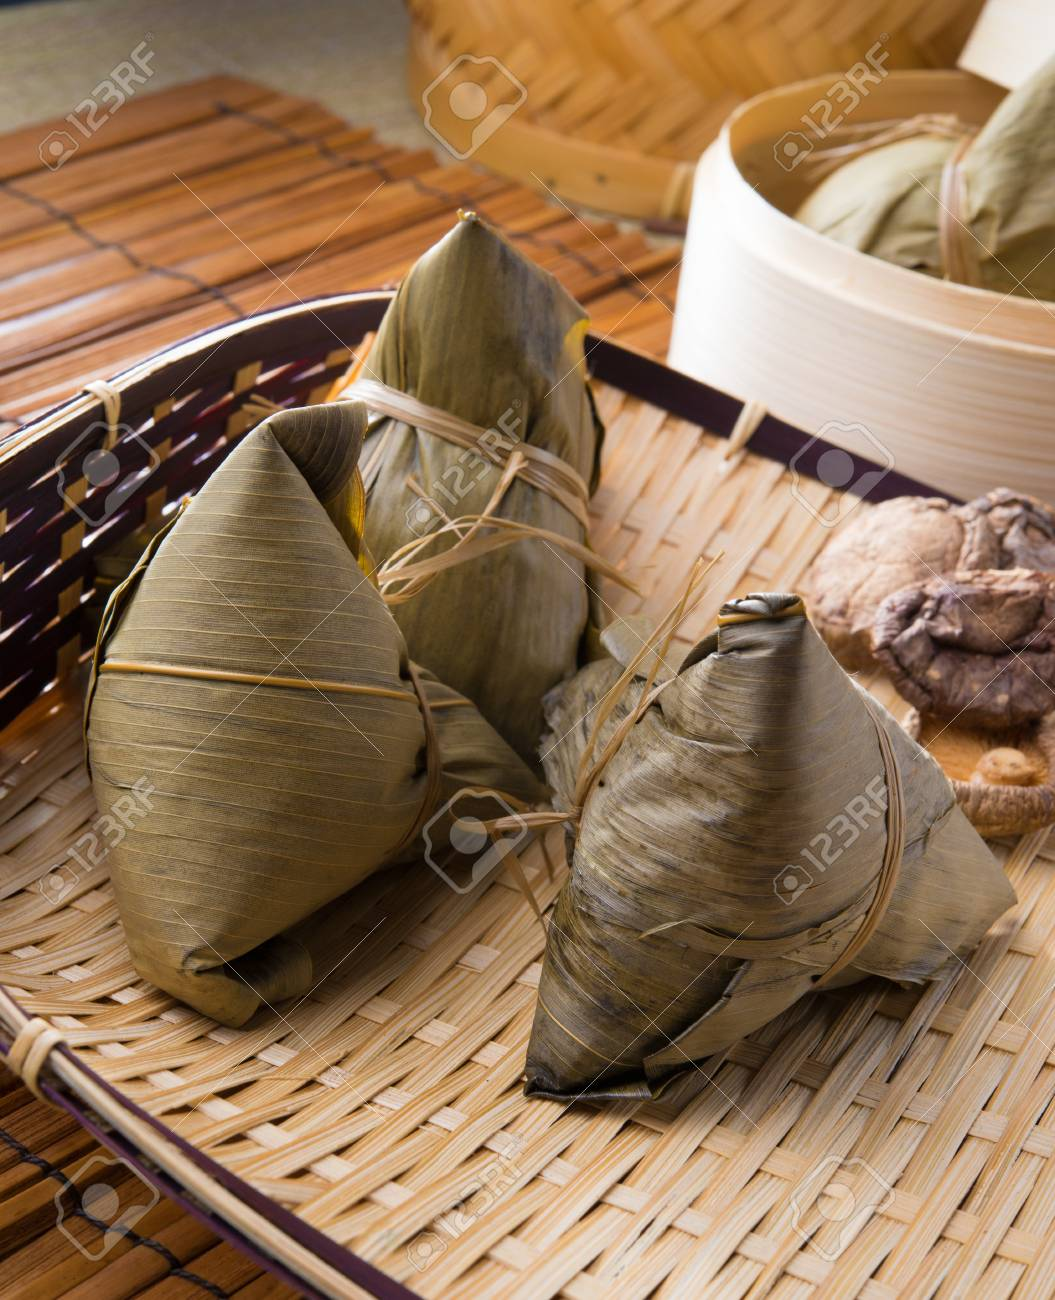 chinese dumplings, zongzi usually taken during festival occasion Stock Photo - 23200961